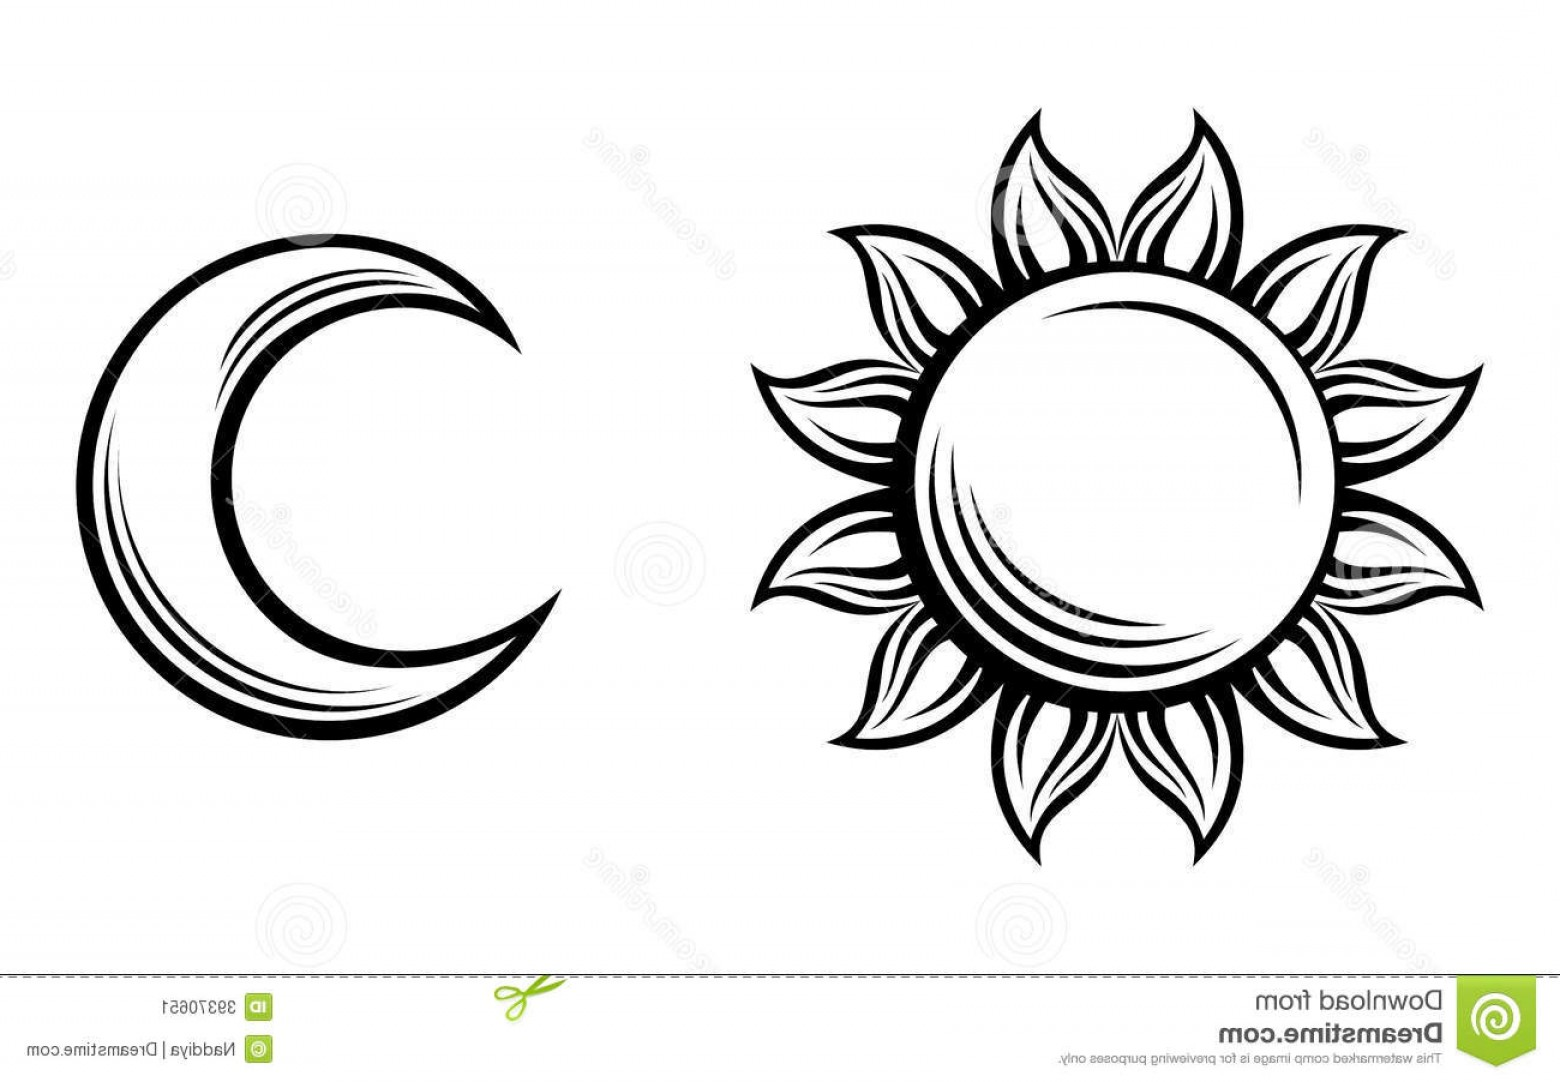 Simple Moon Vector Art: Stock Image Black Silhouettes Sun Moon Vector Isolated White Background Image